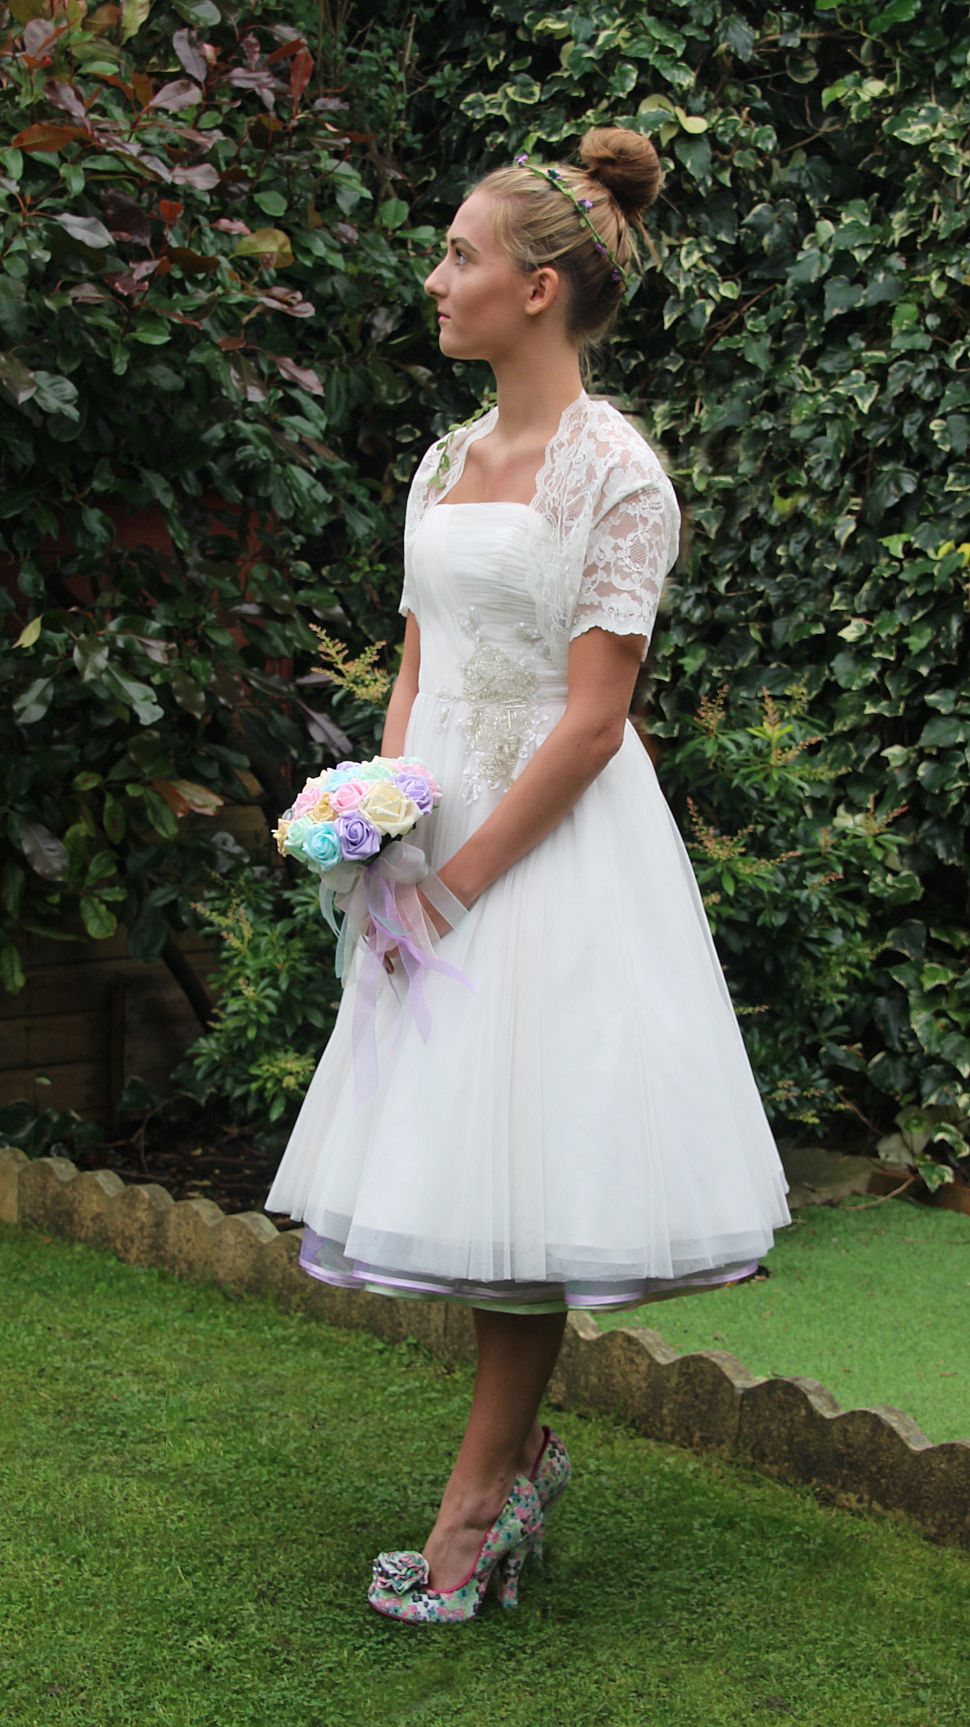 Bridesmaid Petticoat